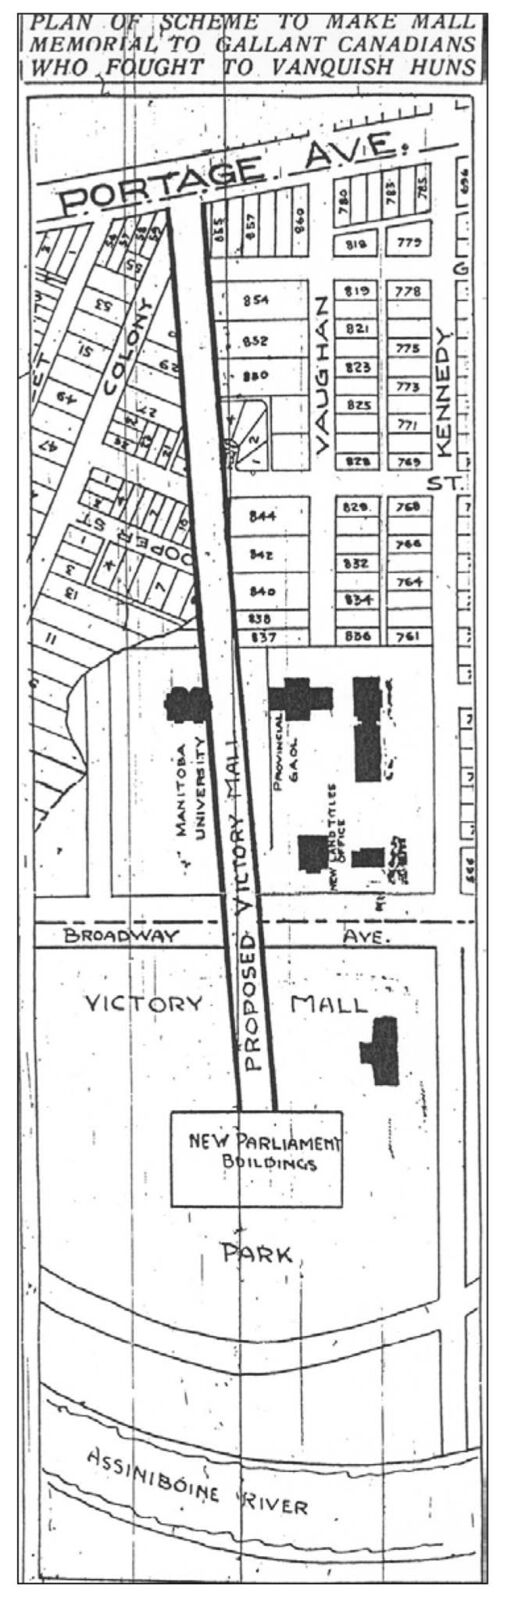 A plan showing the three-degree angle of Memorial Boulevard.